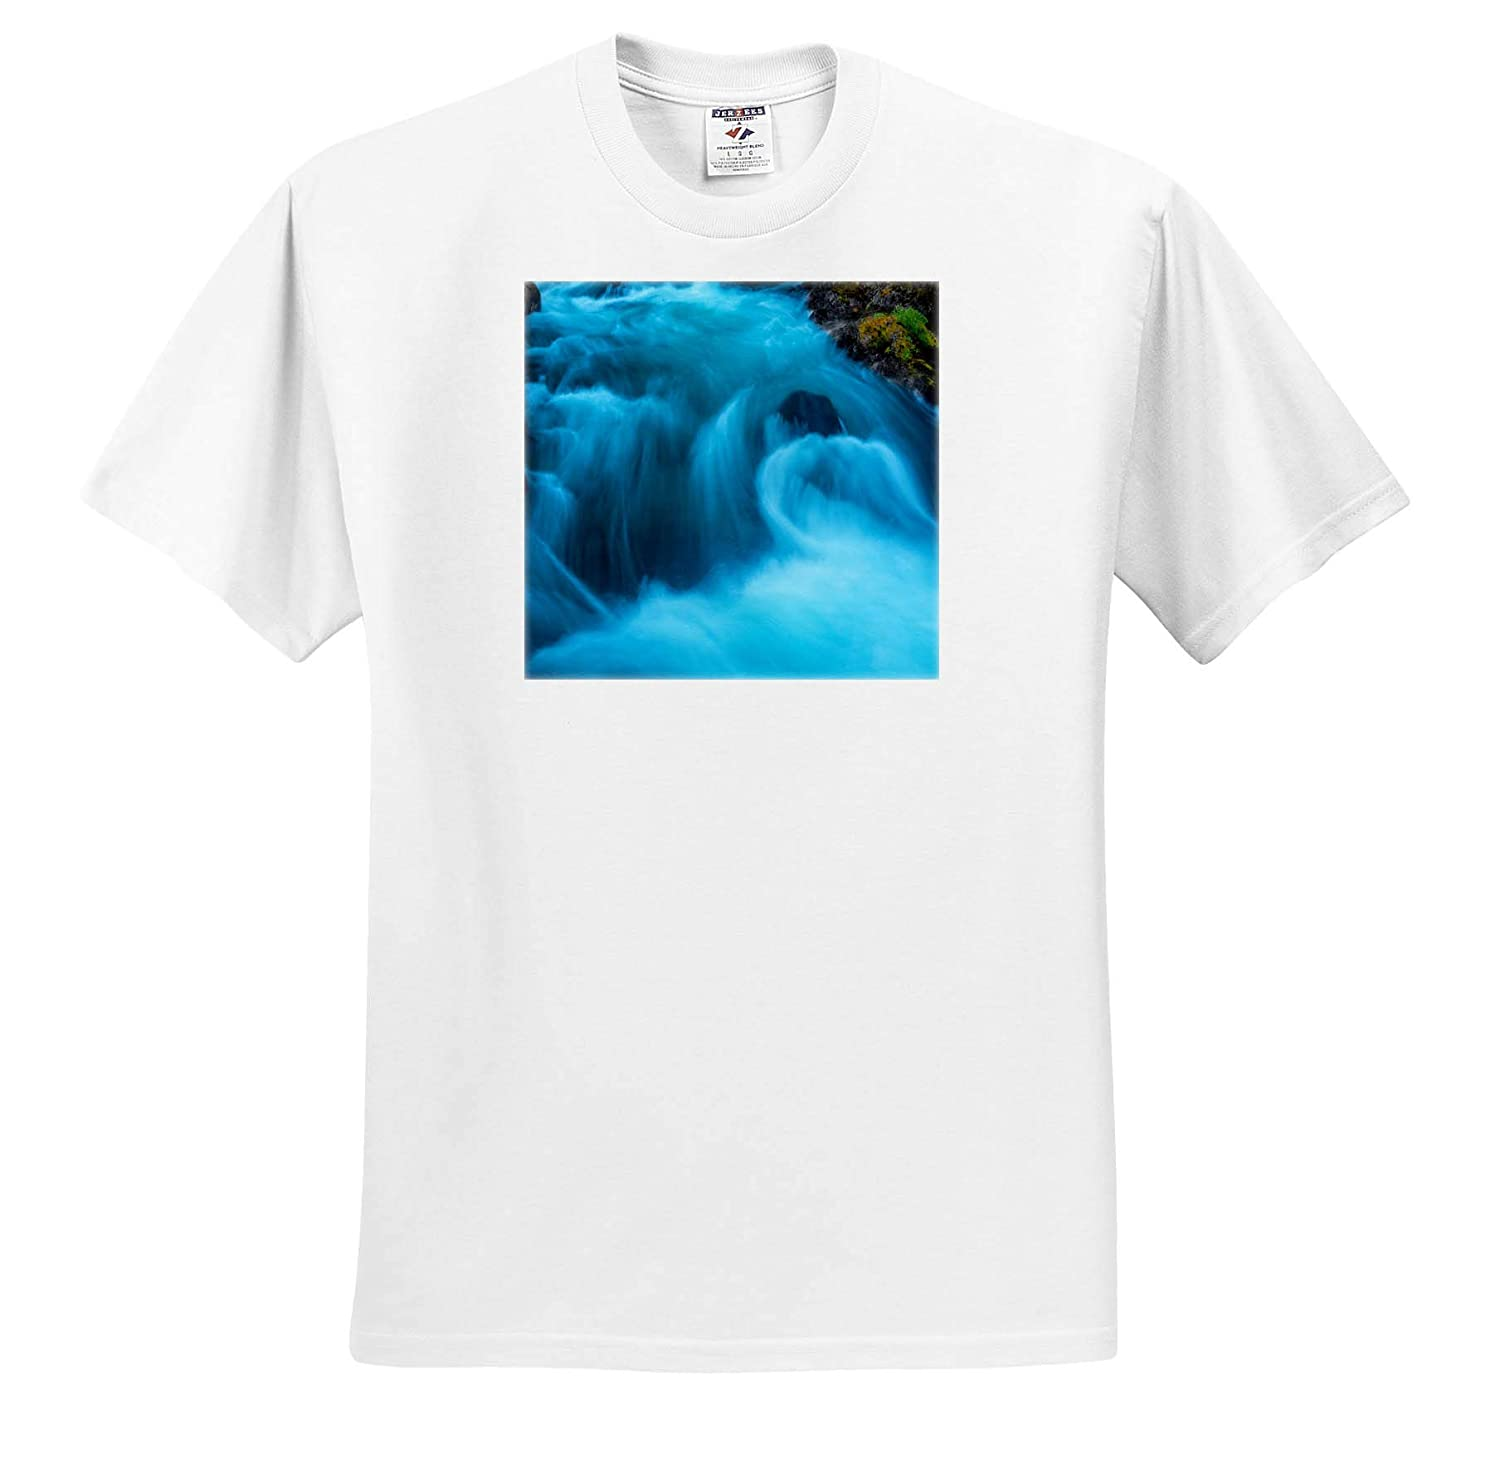 River Water Flowing Around Rock Landscapes Adult T-Shirt XL 3dRose Mike Swindle Photography ts/_309073